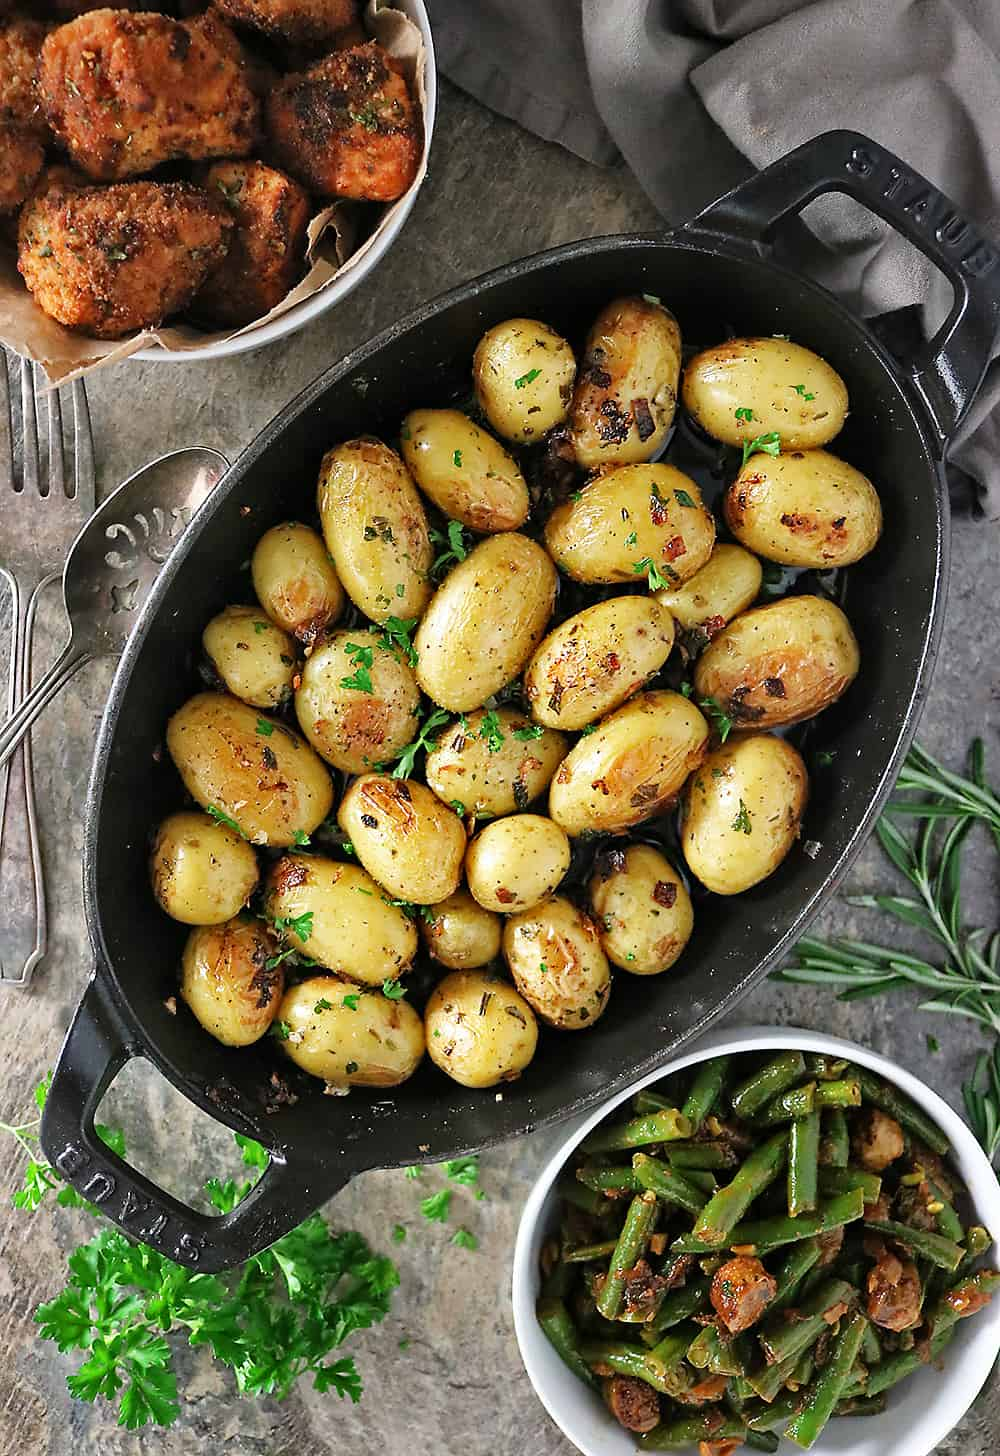 Cast-iron herb garlic potatoes, beans and sausage and fried baked chicken photo